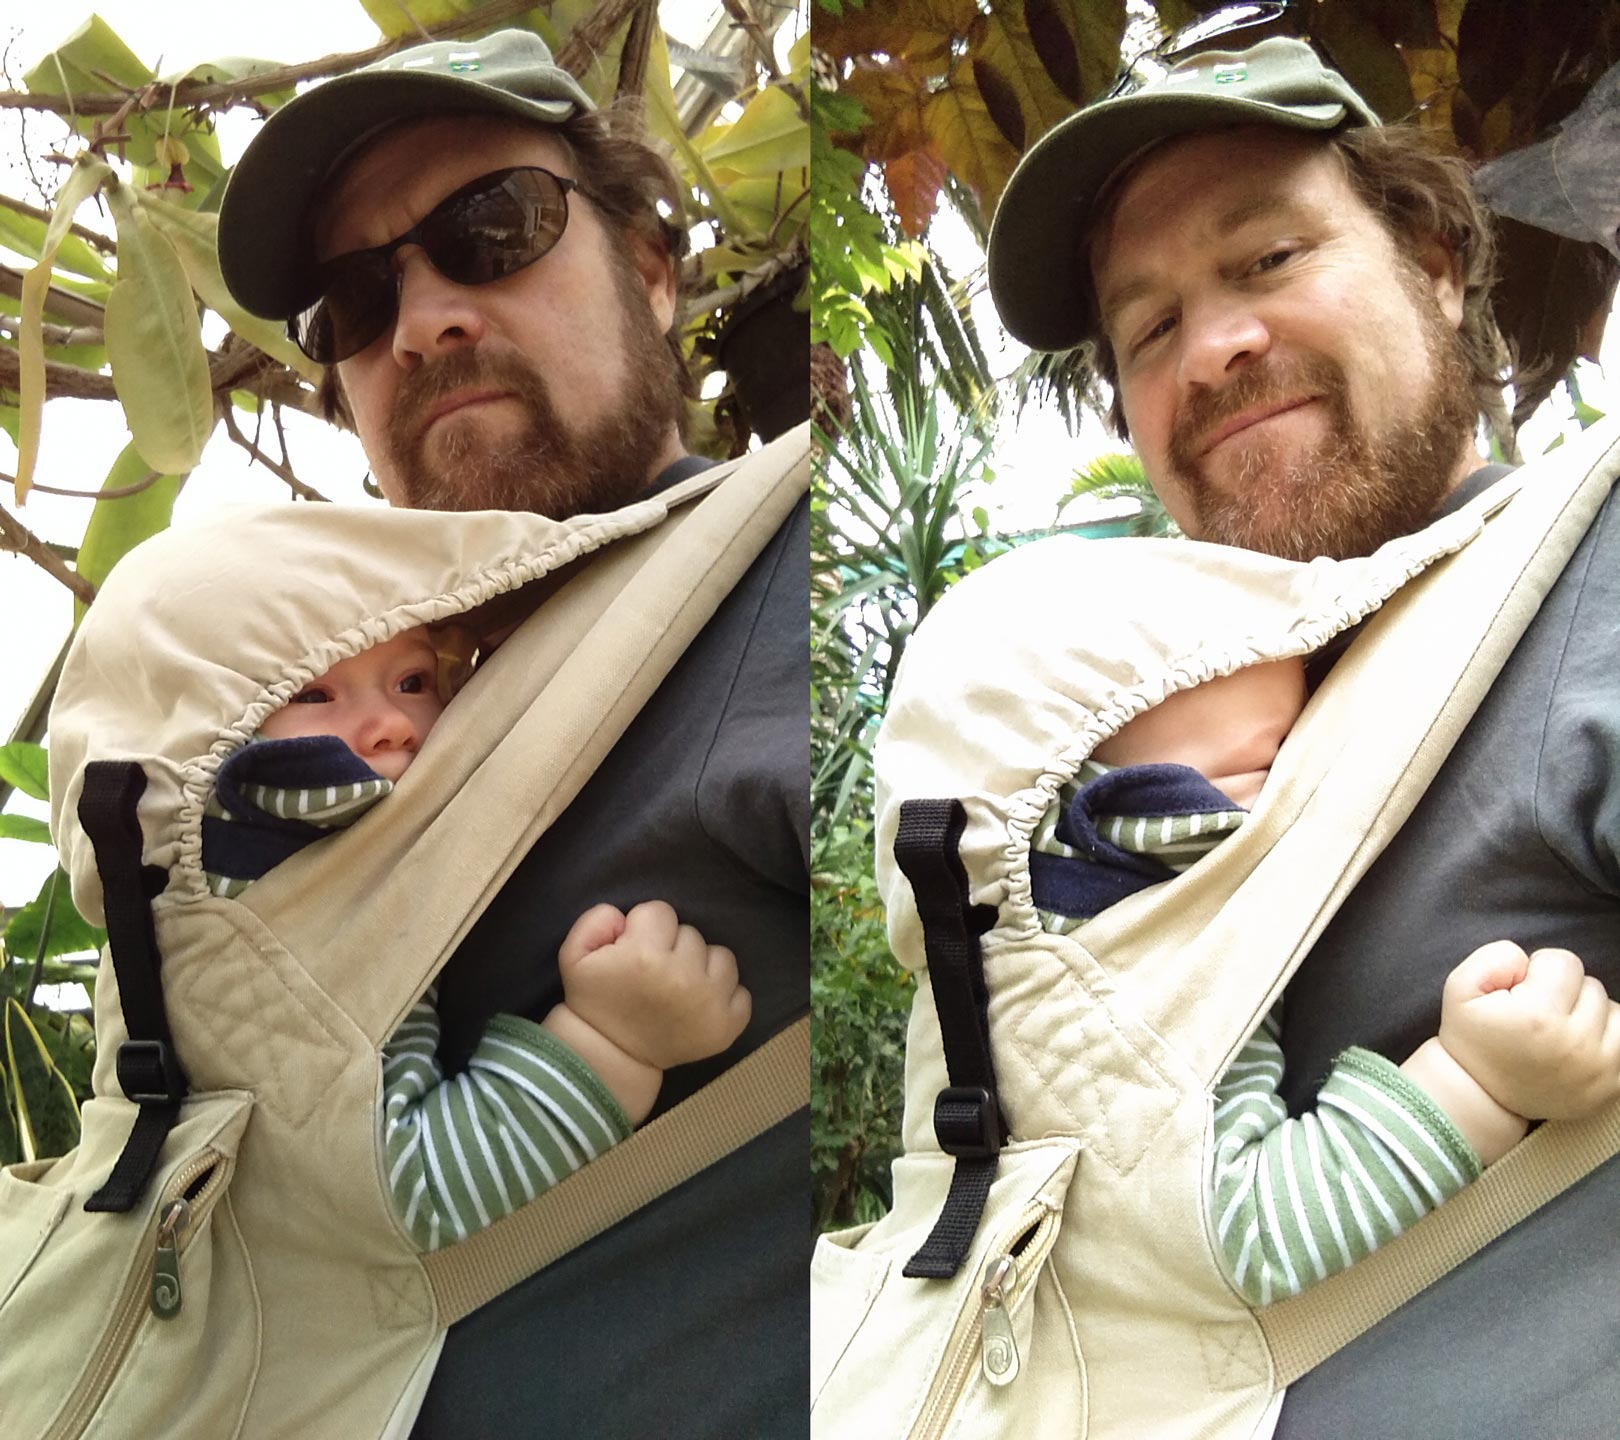 Back in the dark ages, parents on a walk with a baby lashed on didn't always know if the kid was asleep. But now, a phone's selfie-cam can answer that question. Left: no. Right: yes.